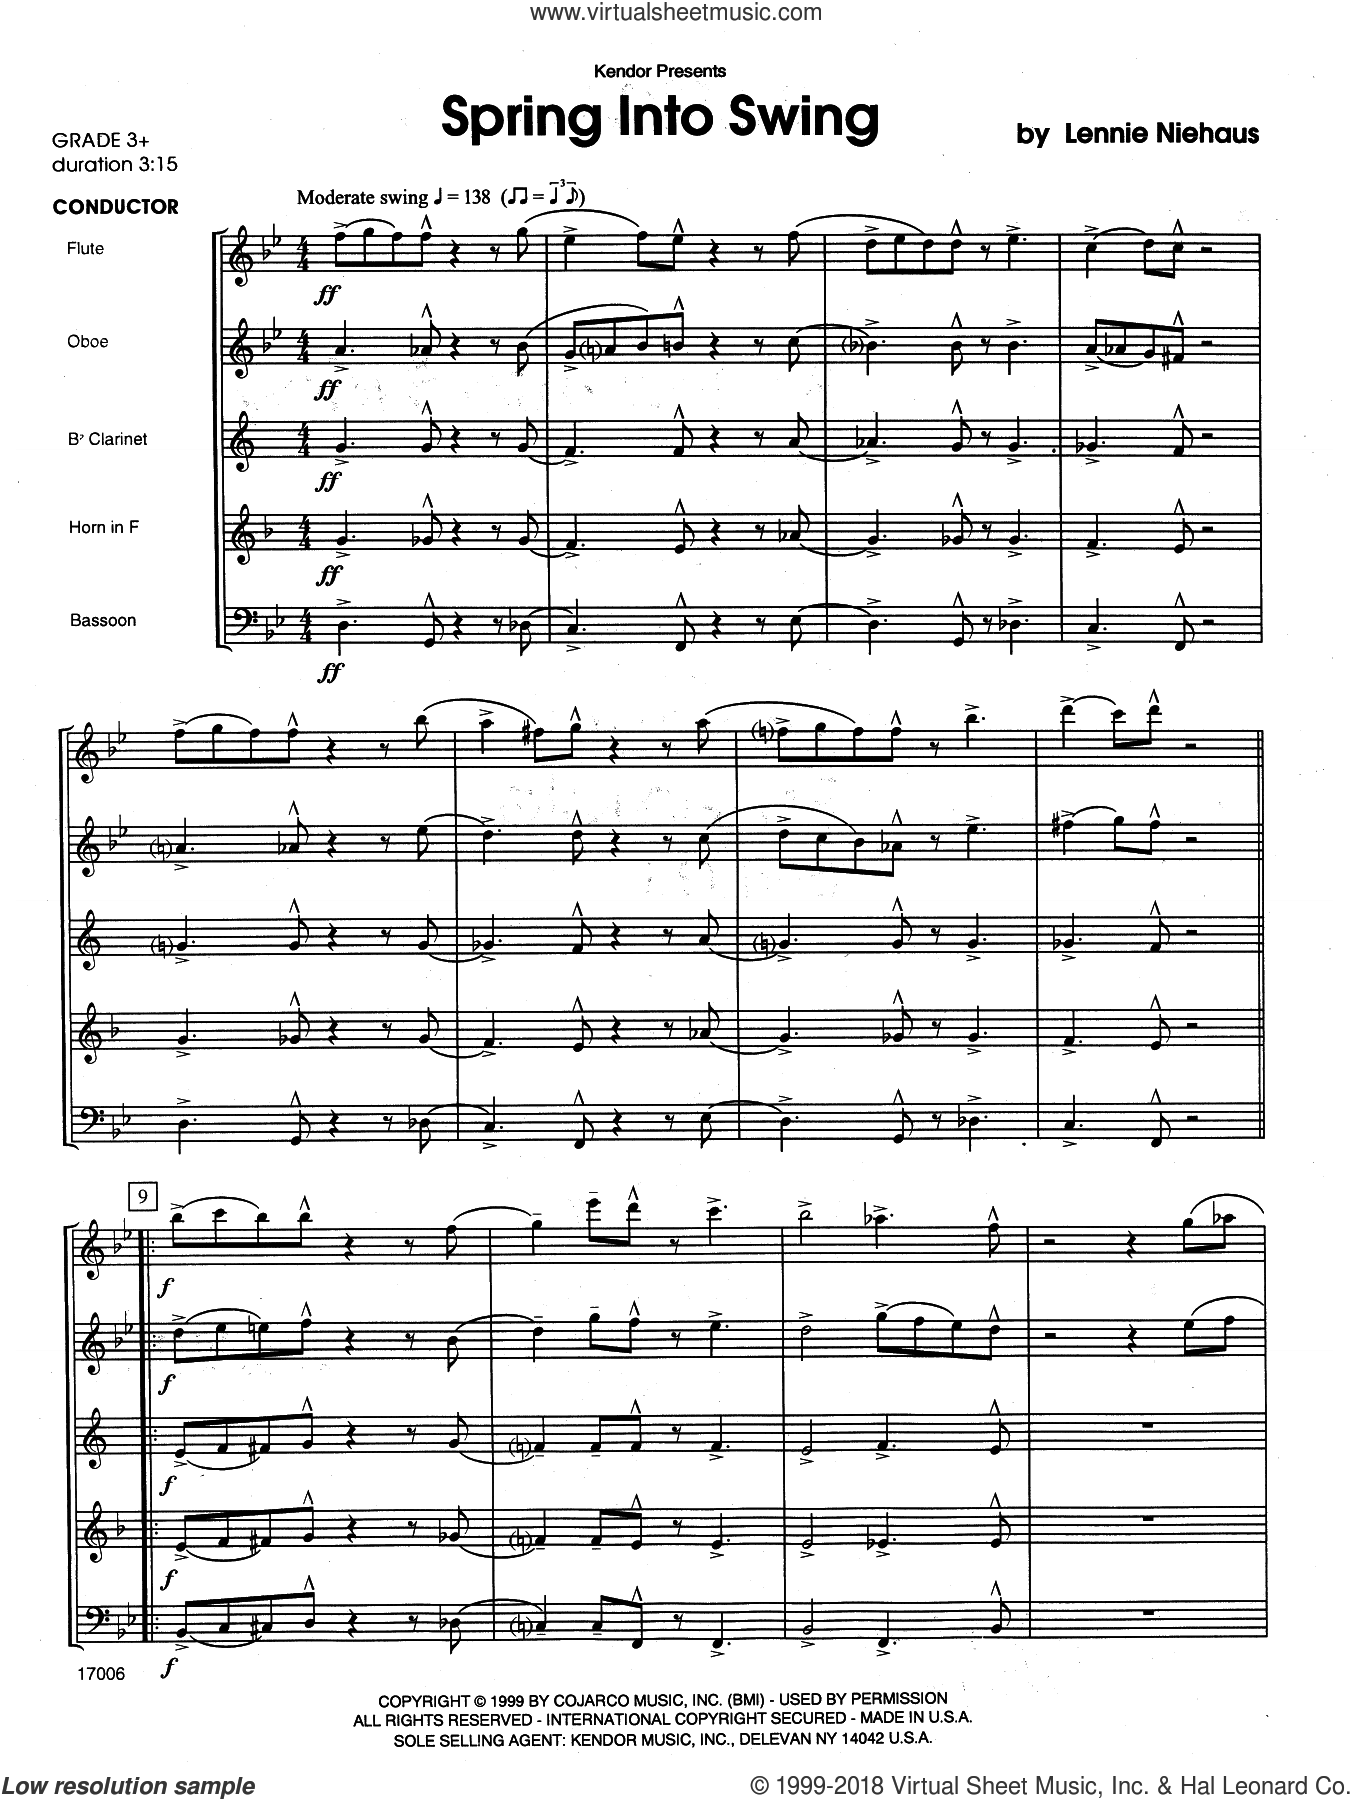 Spring Into Swing (COMPLETE) sheet music for wind quintet by Lennie Niehaus, intermediate